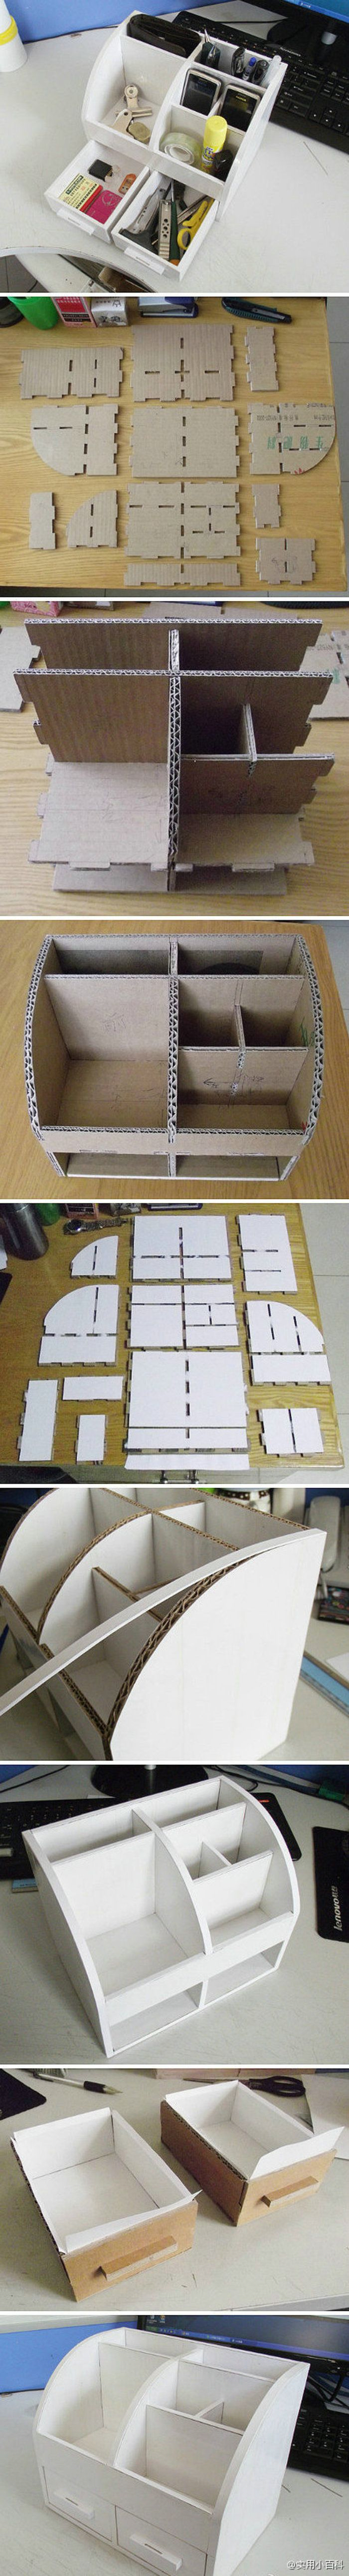 Self-contained small box